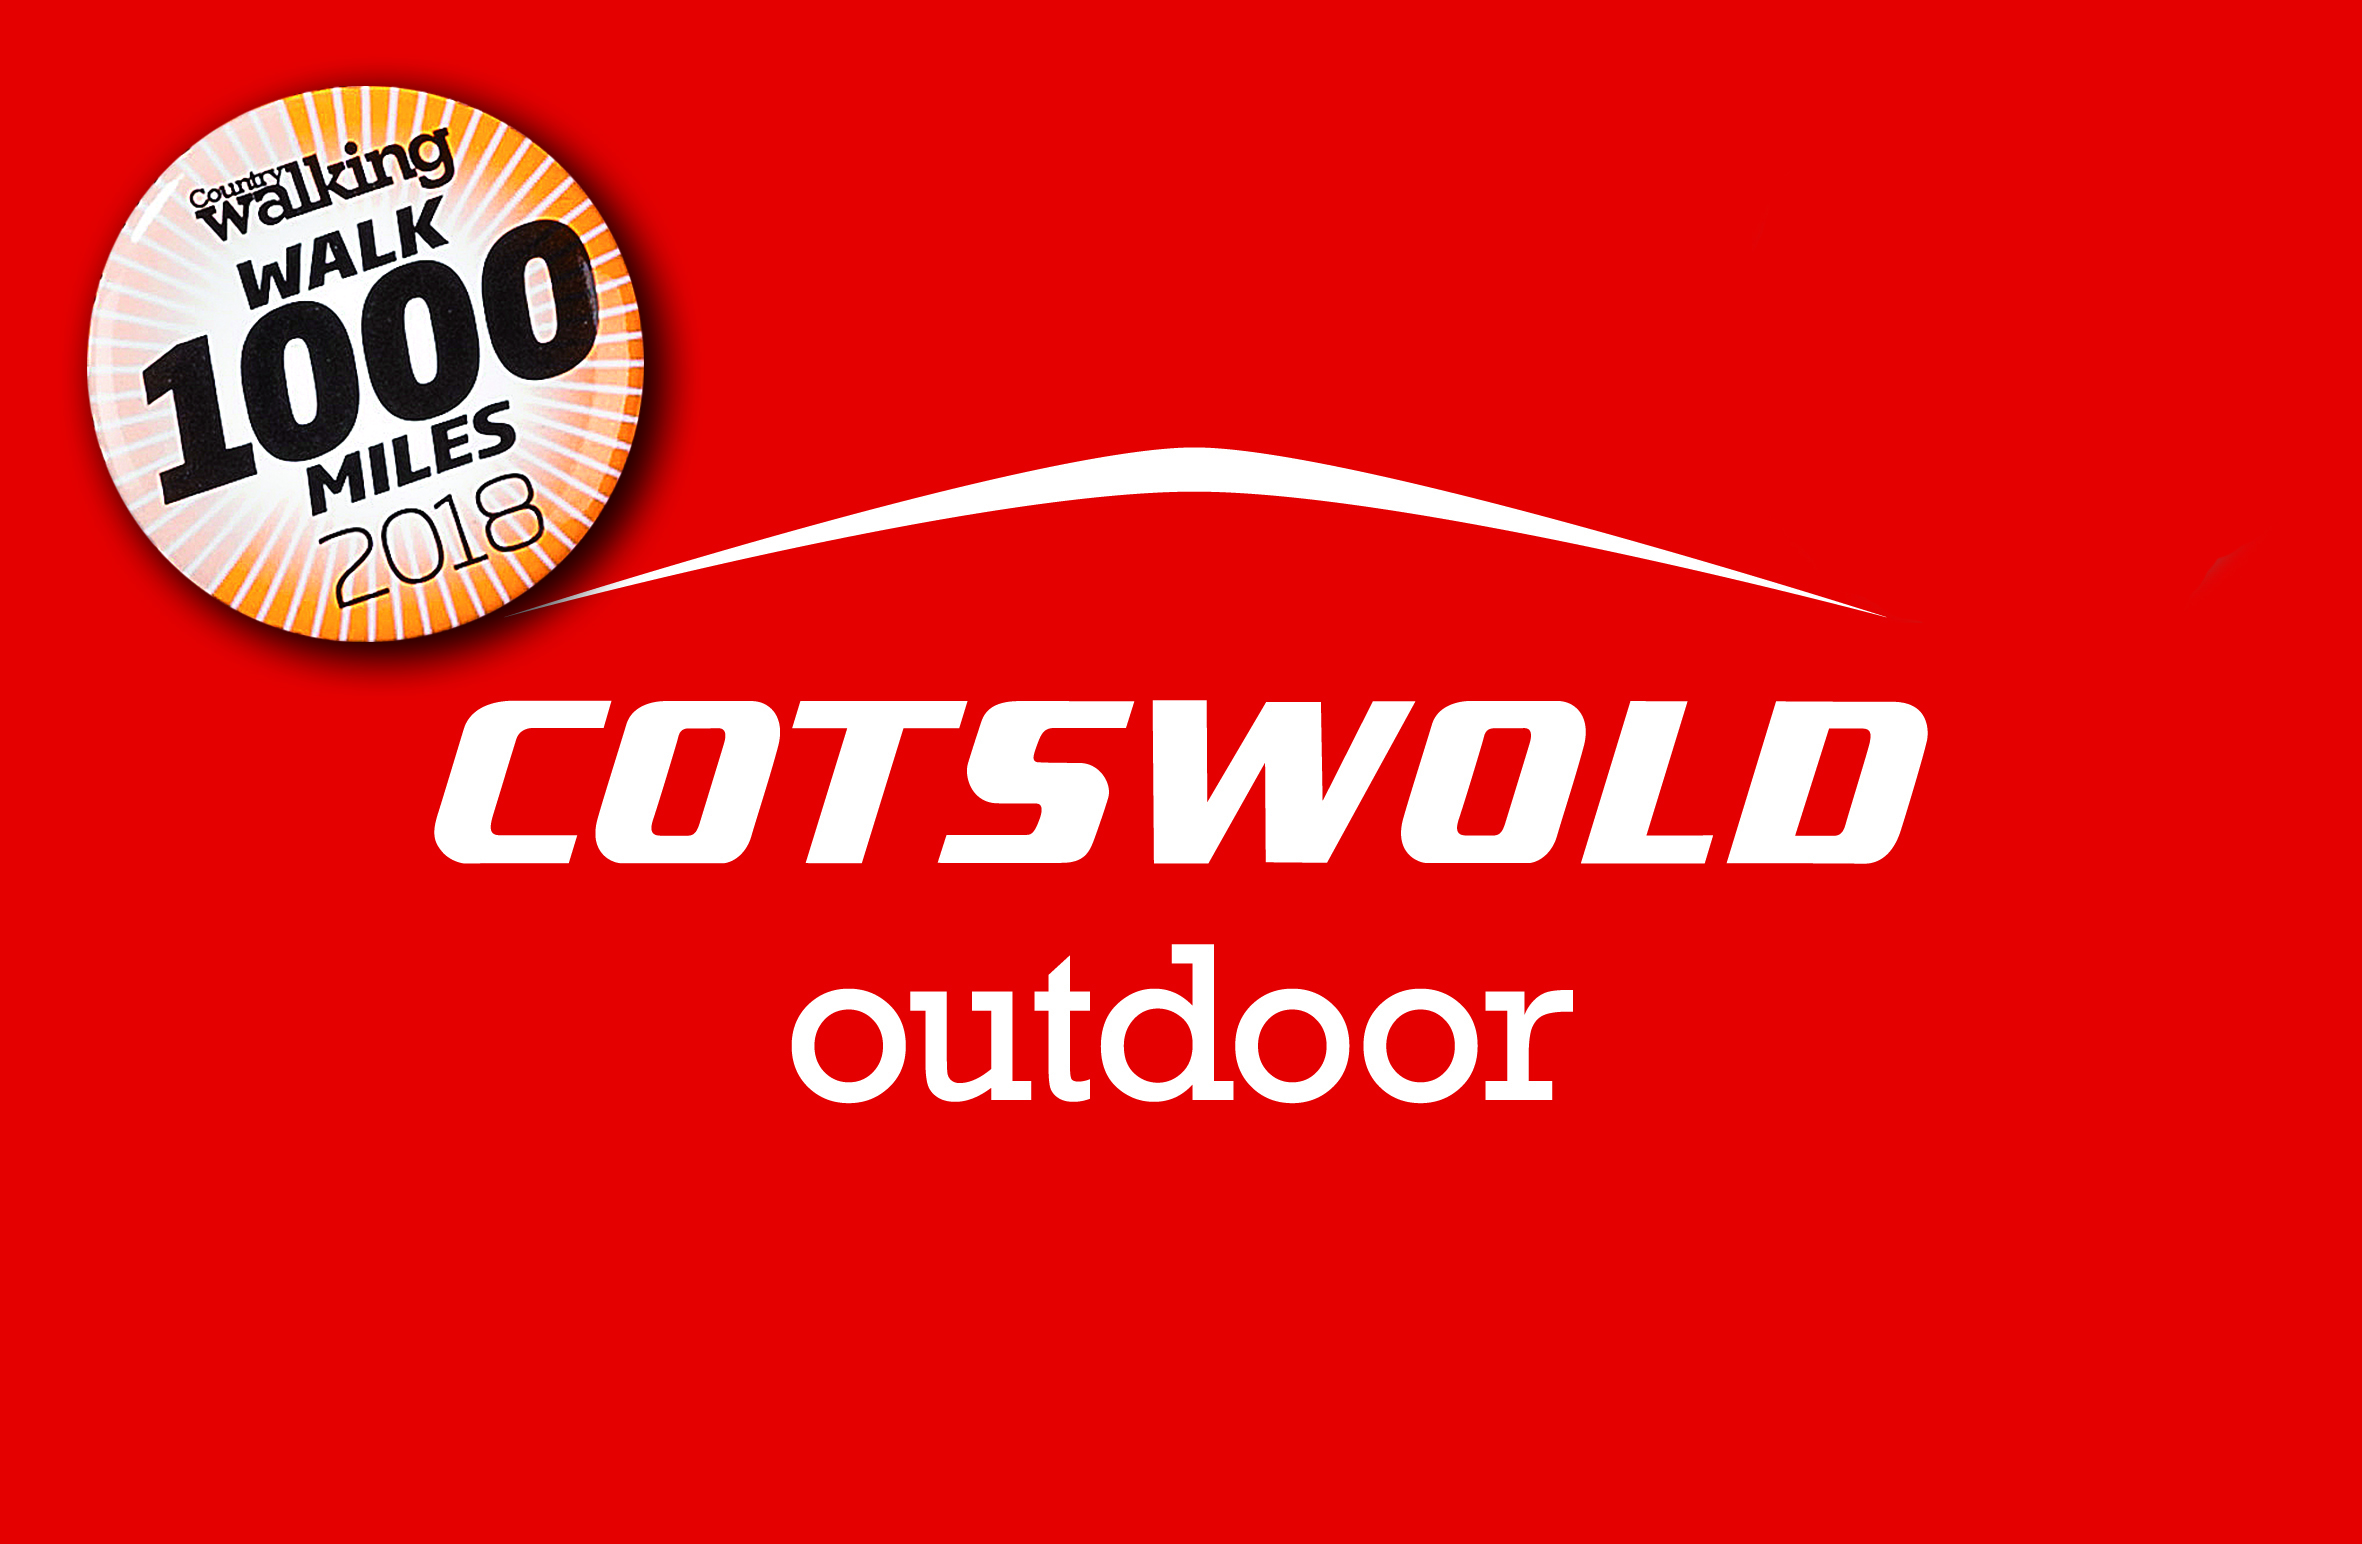 Show your badge and watch the ££s fall off in Cotswold.